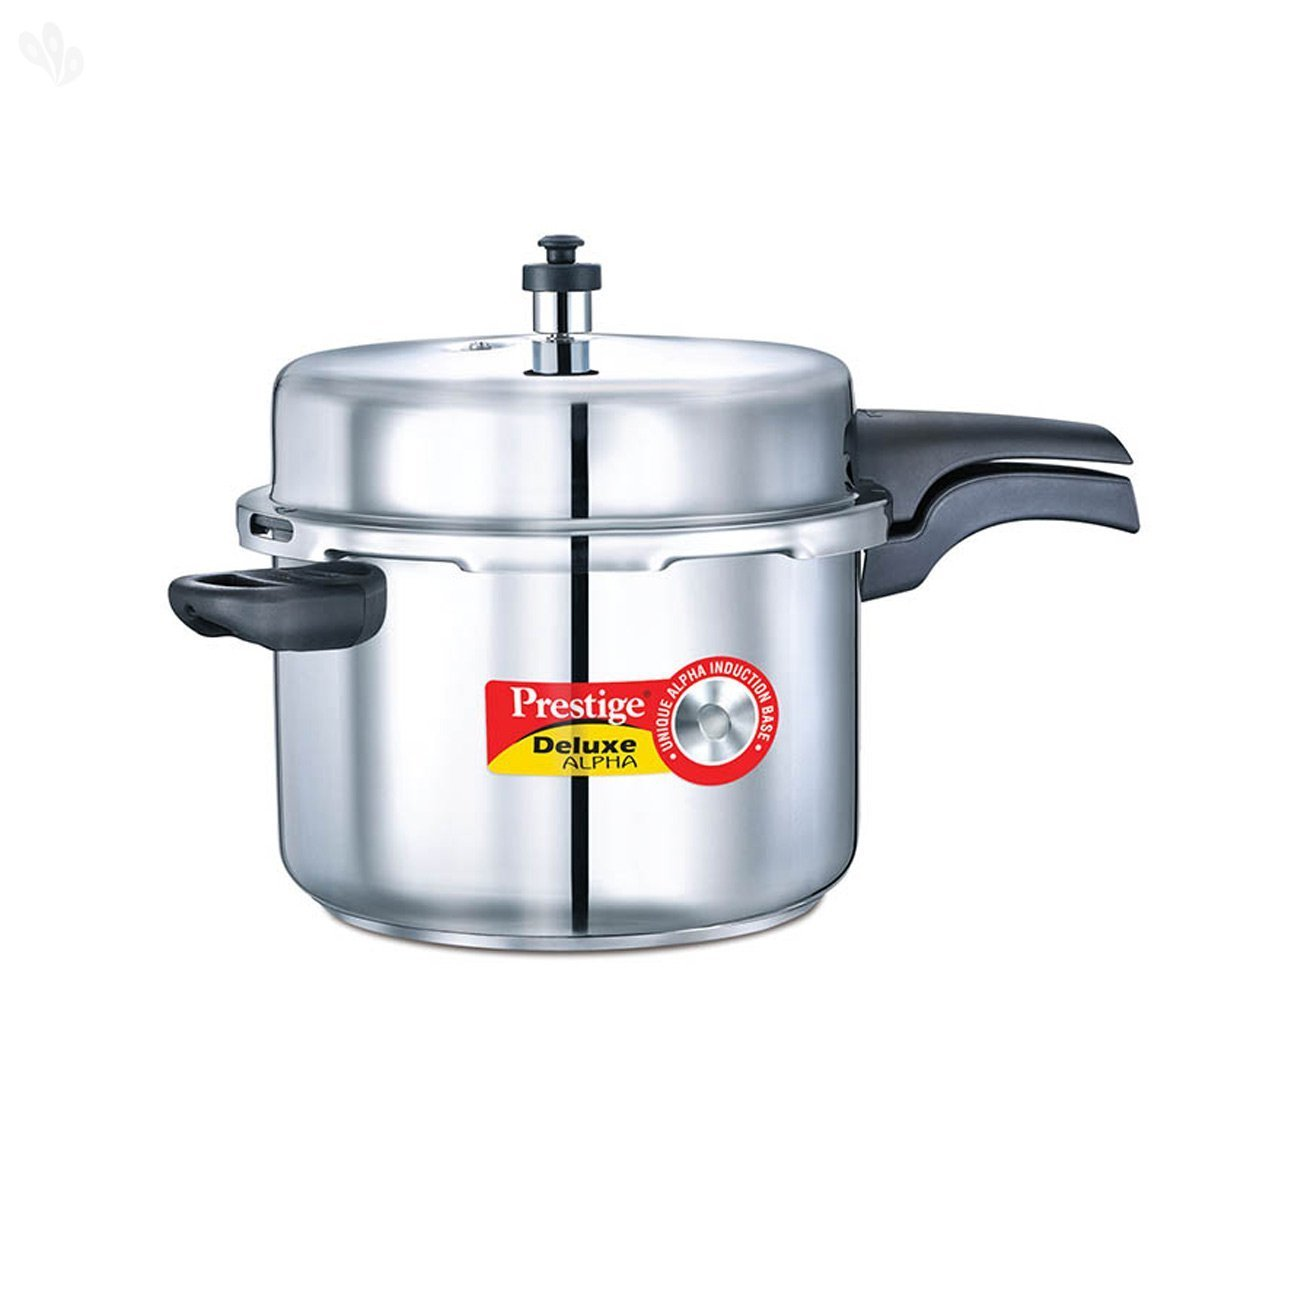 Prestige Kitchen Appliances Buy Prestige Deluxe Alpha Stainless Steel Pressure Cooker 8